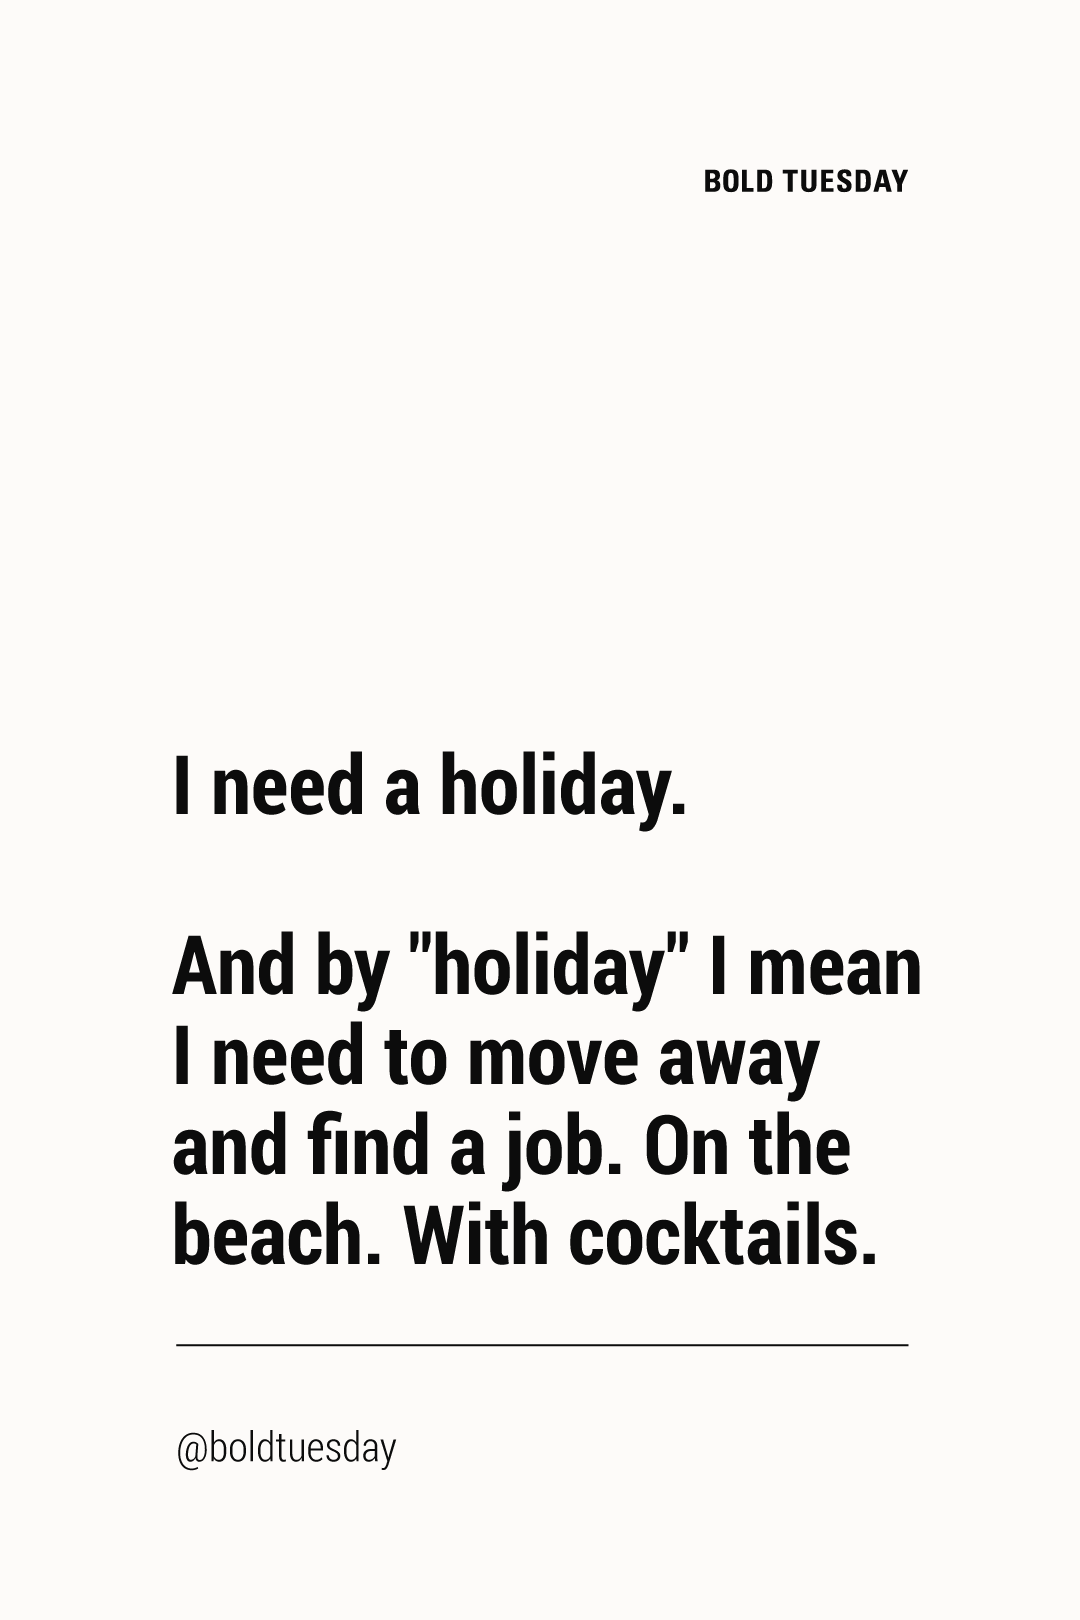 We All Need A Holiday Don T We Travelquote Funnyquote Funnytravelquote Holiday Quotes Funny Funny Travel Quotes Holiday Quotes